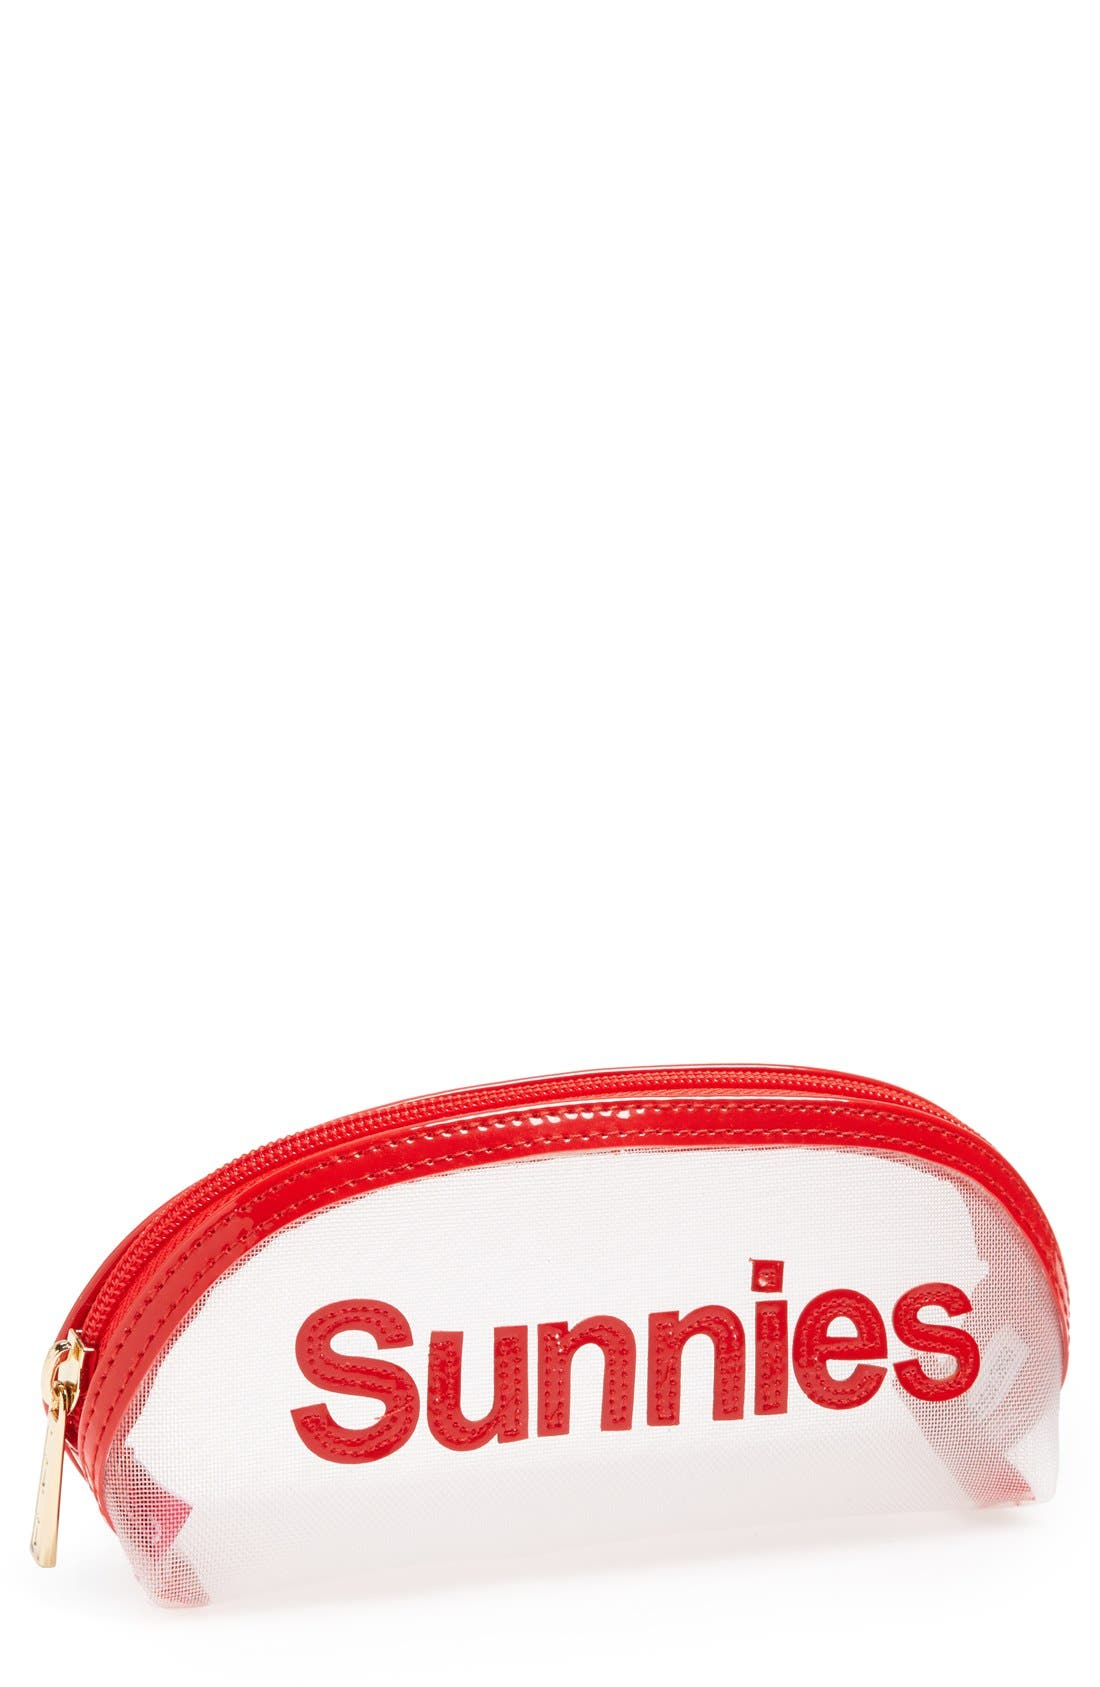 Alternate Image 1 Selected - Lolo Mesh Sunglasses Pouch